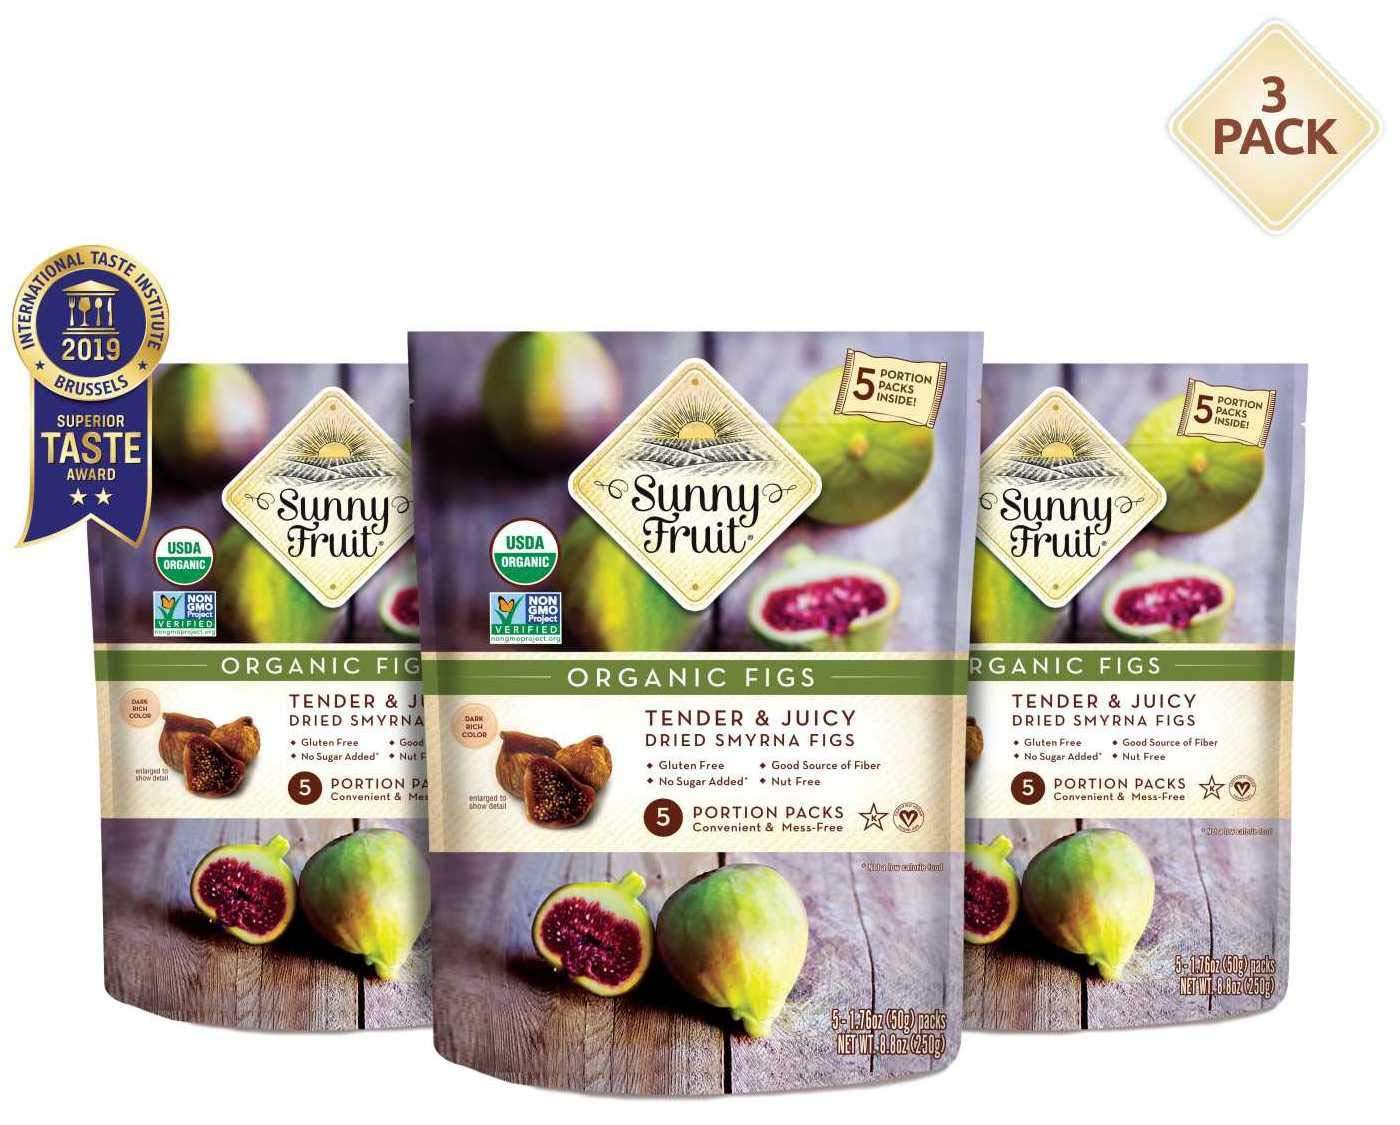 ORGANIC Turkish Dried Figs - Sunny Fruit - (3 Bags) - (5) 1.76oz Portion Packs per Bag   Purely Figs - NO Added Sugars, Sulfurs or Preservatives   NON-GMO, VEGAN, HALAL & KOSHER